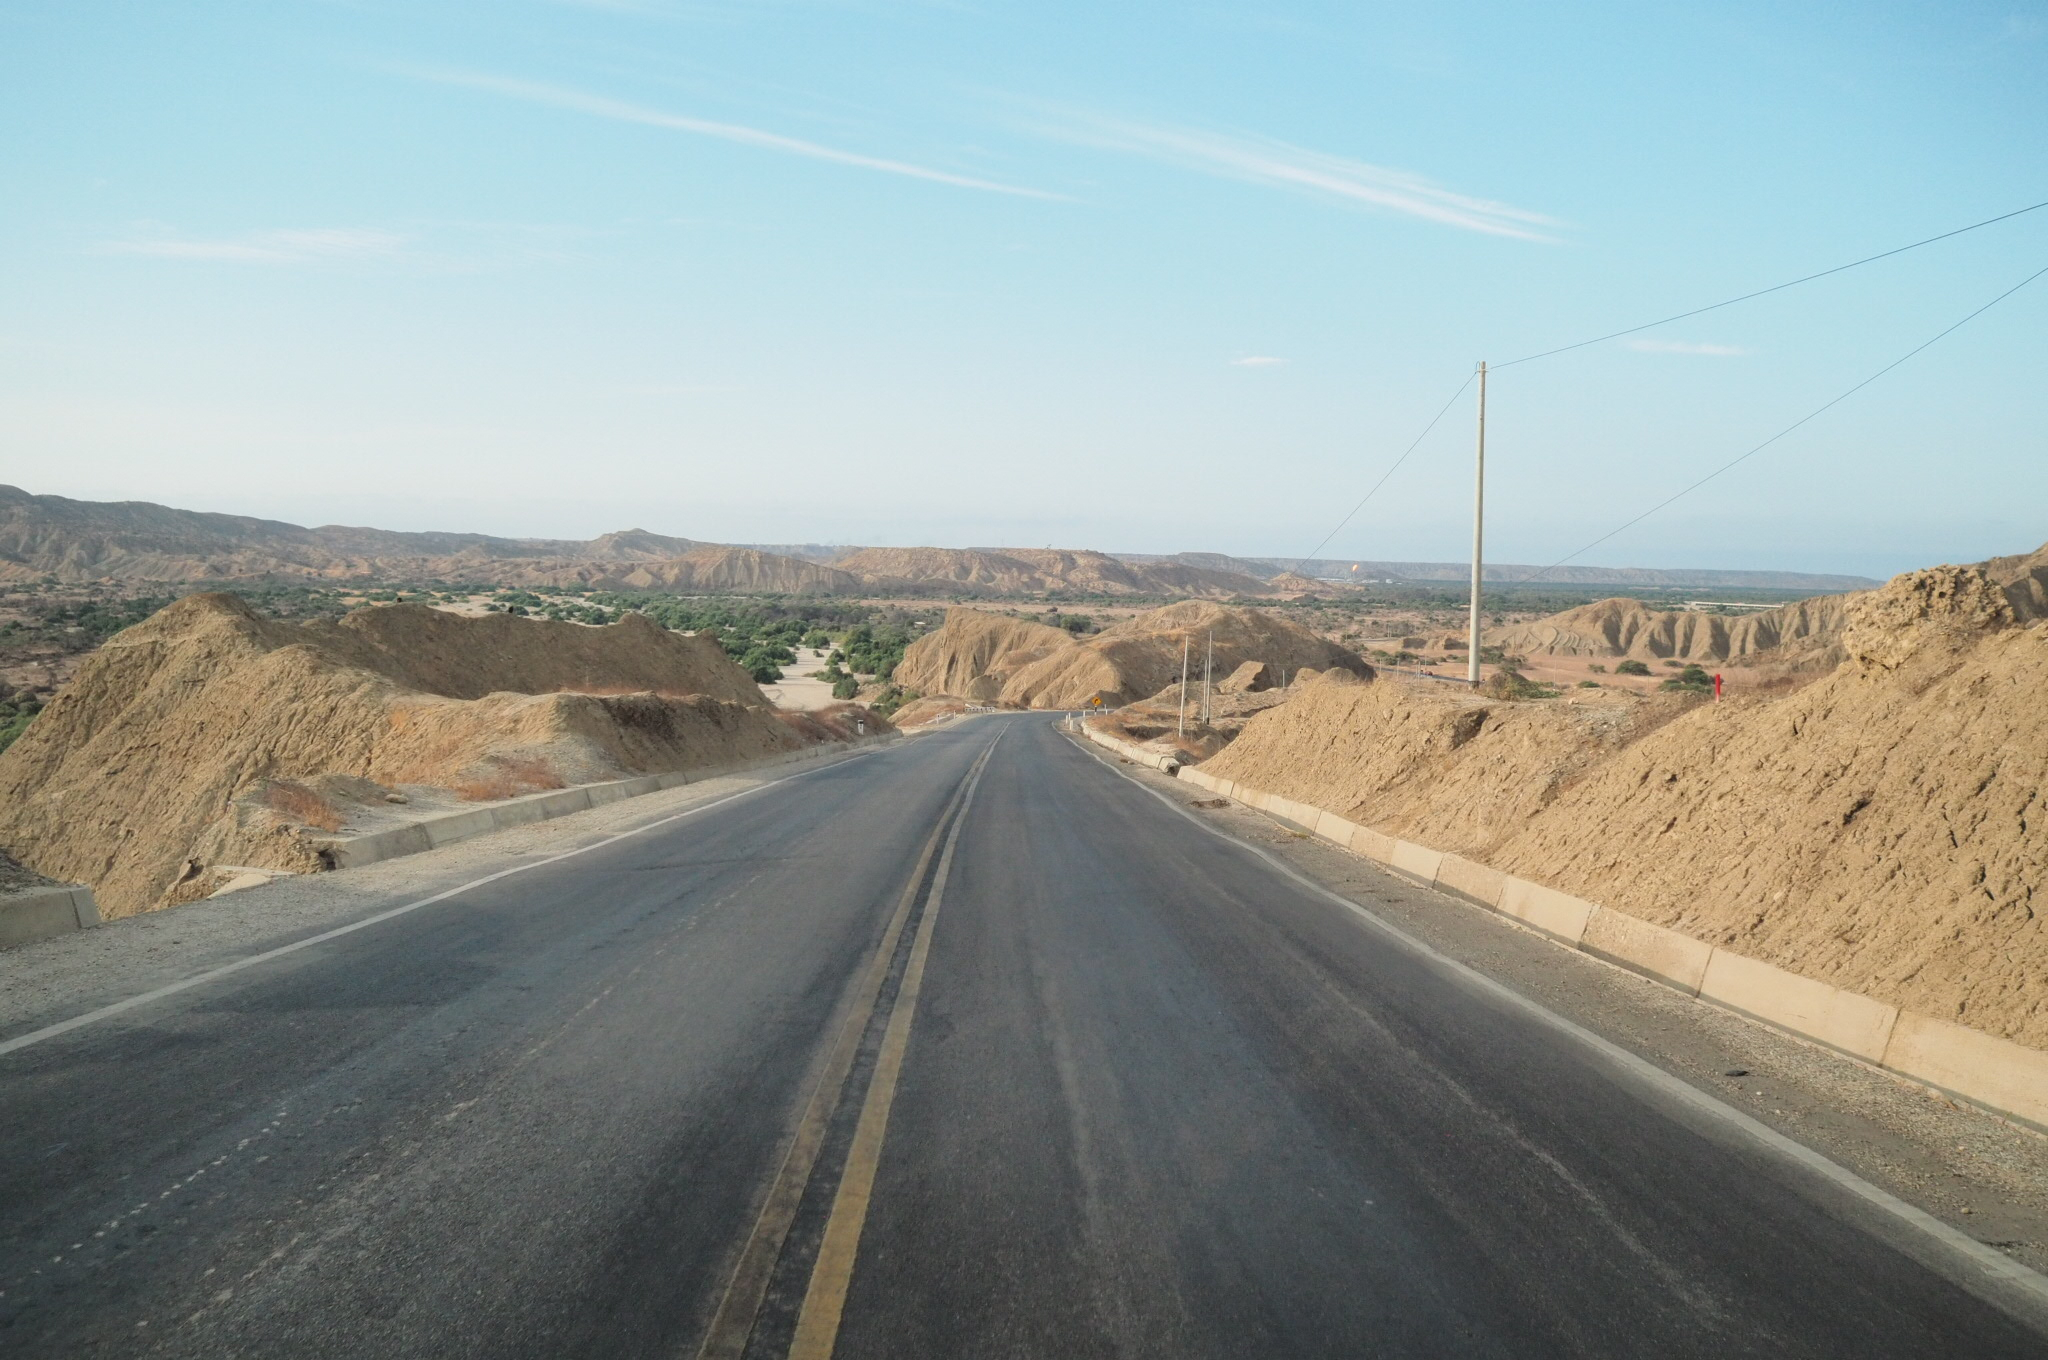 View of the panamerican highway near Zorritos, Peru. Just after the Ecuadorian border.